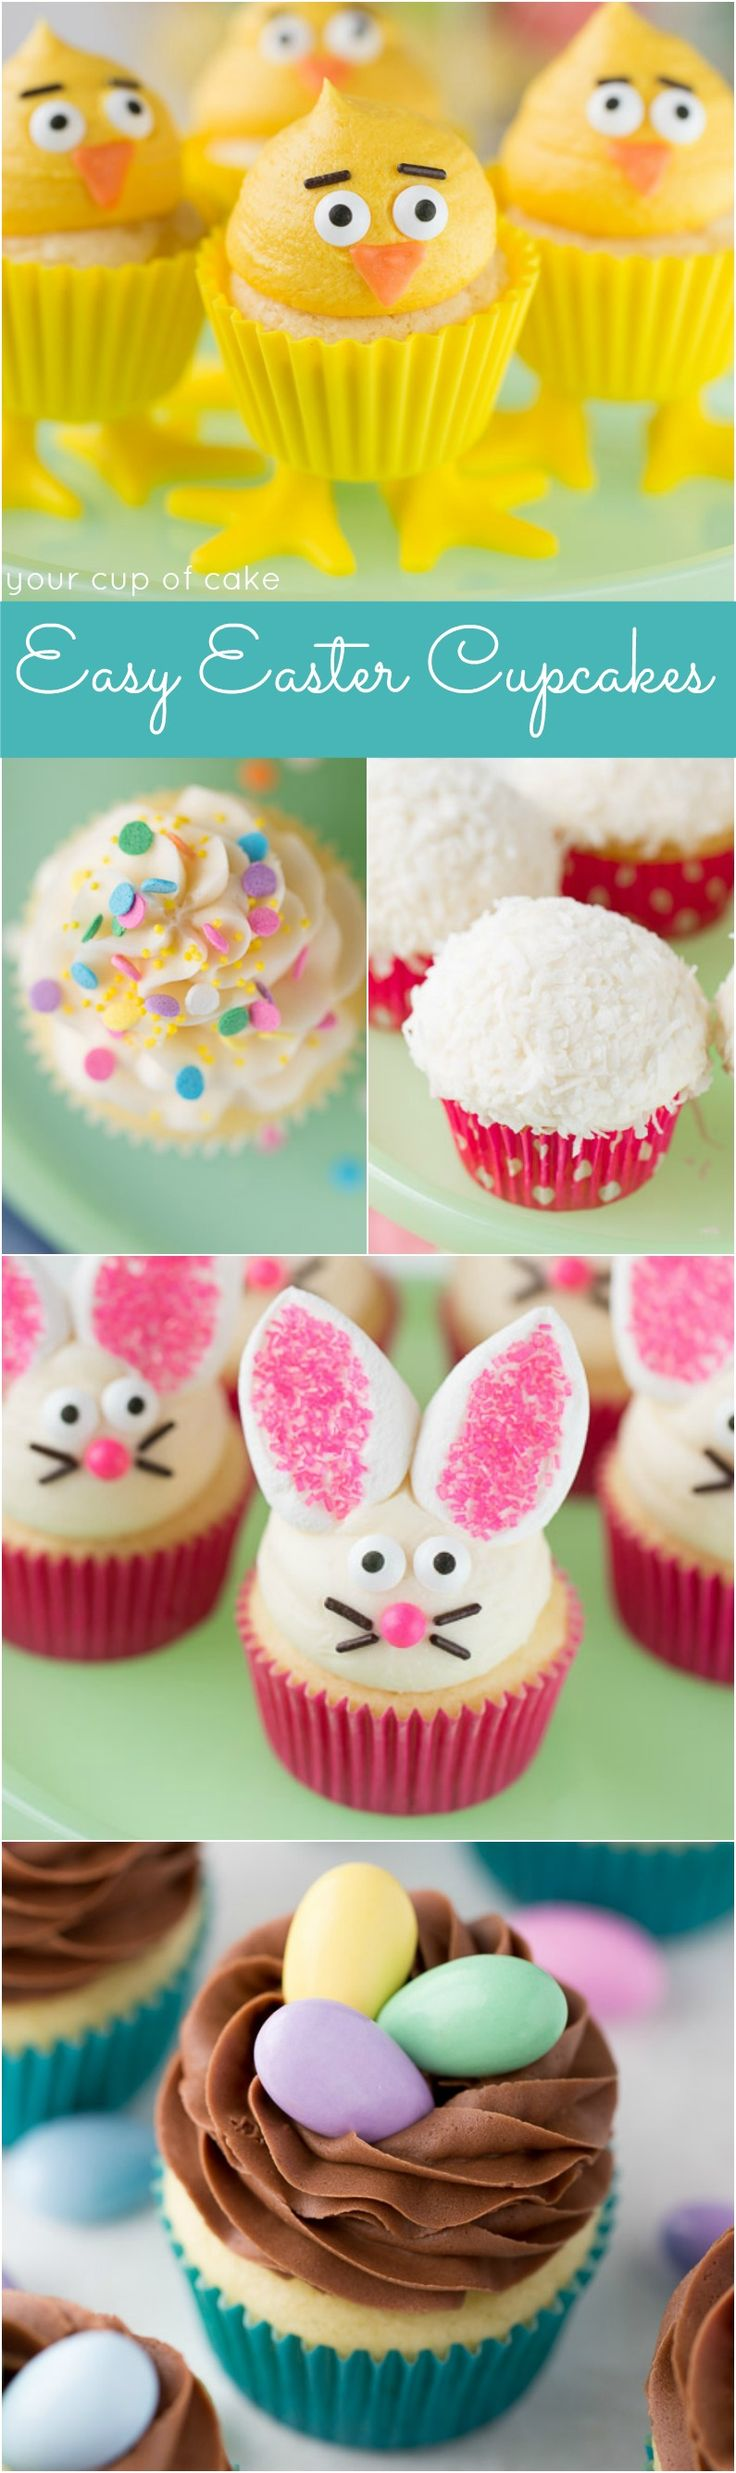 easy easter cupcake decorating ideas the marshmallow bunny ears are so cute - Cupcake Decorating